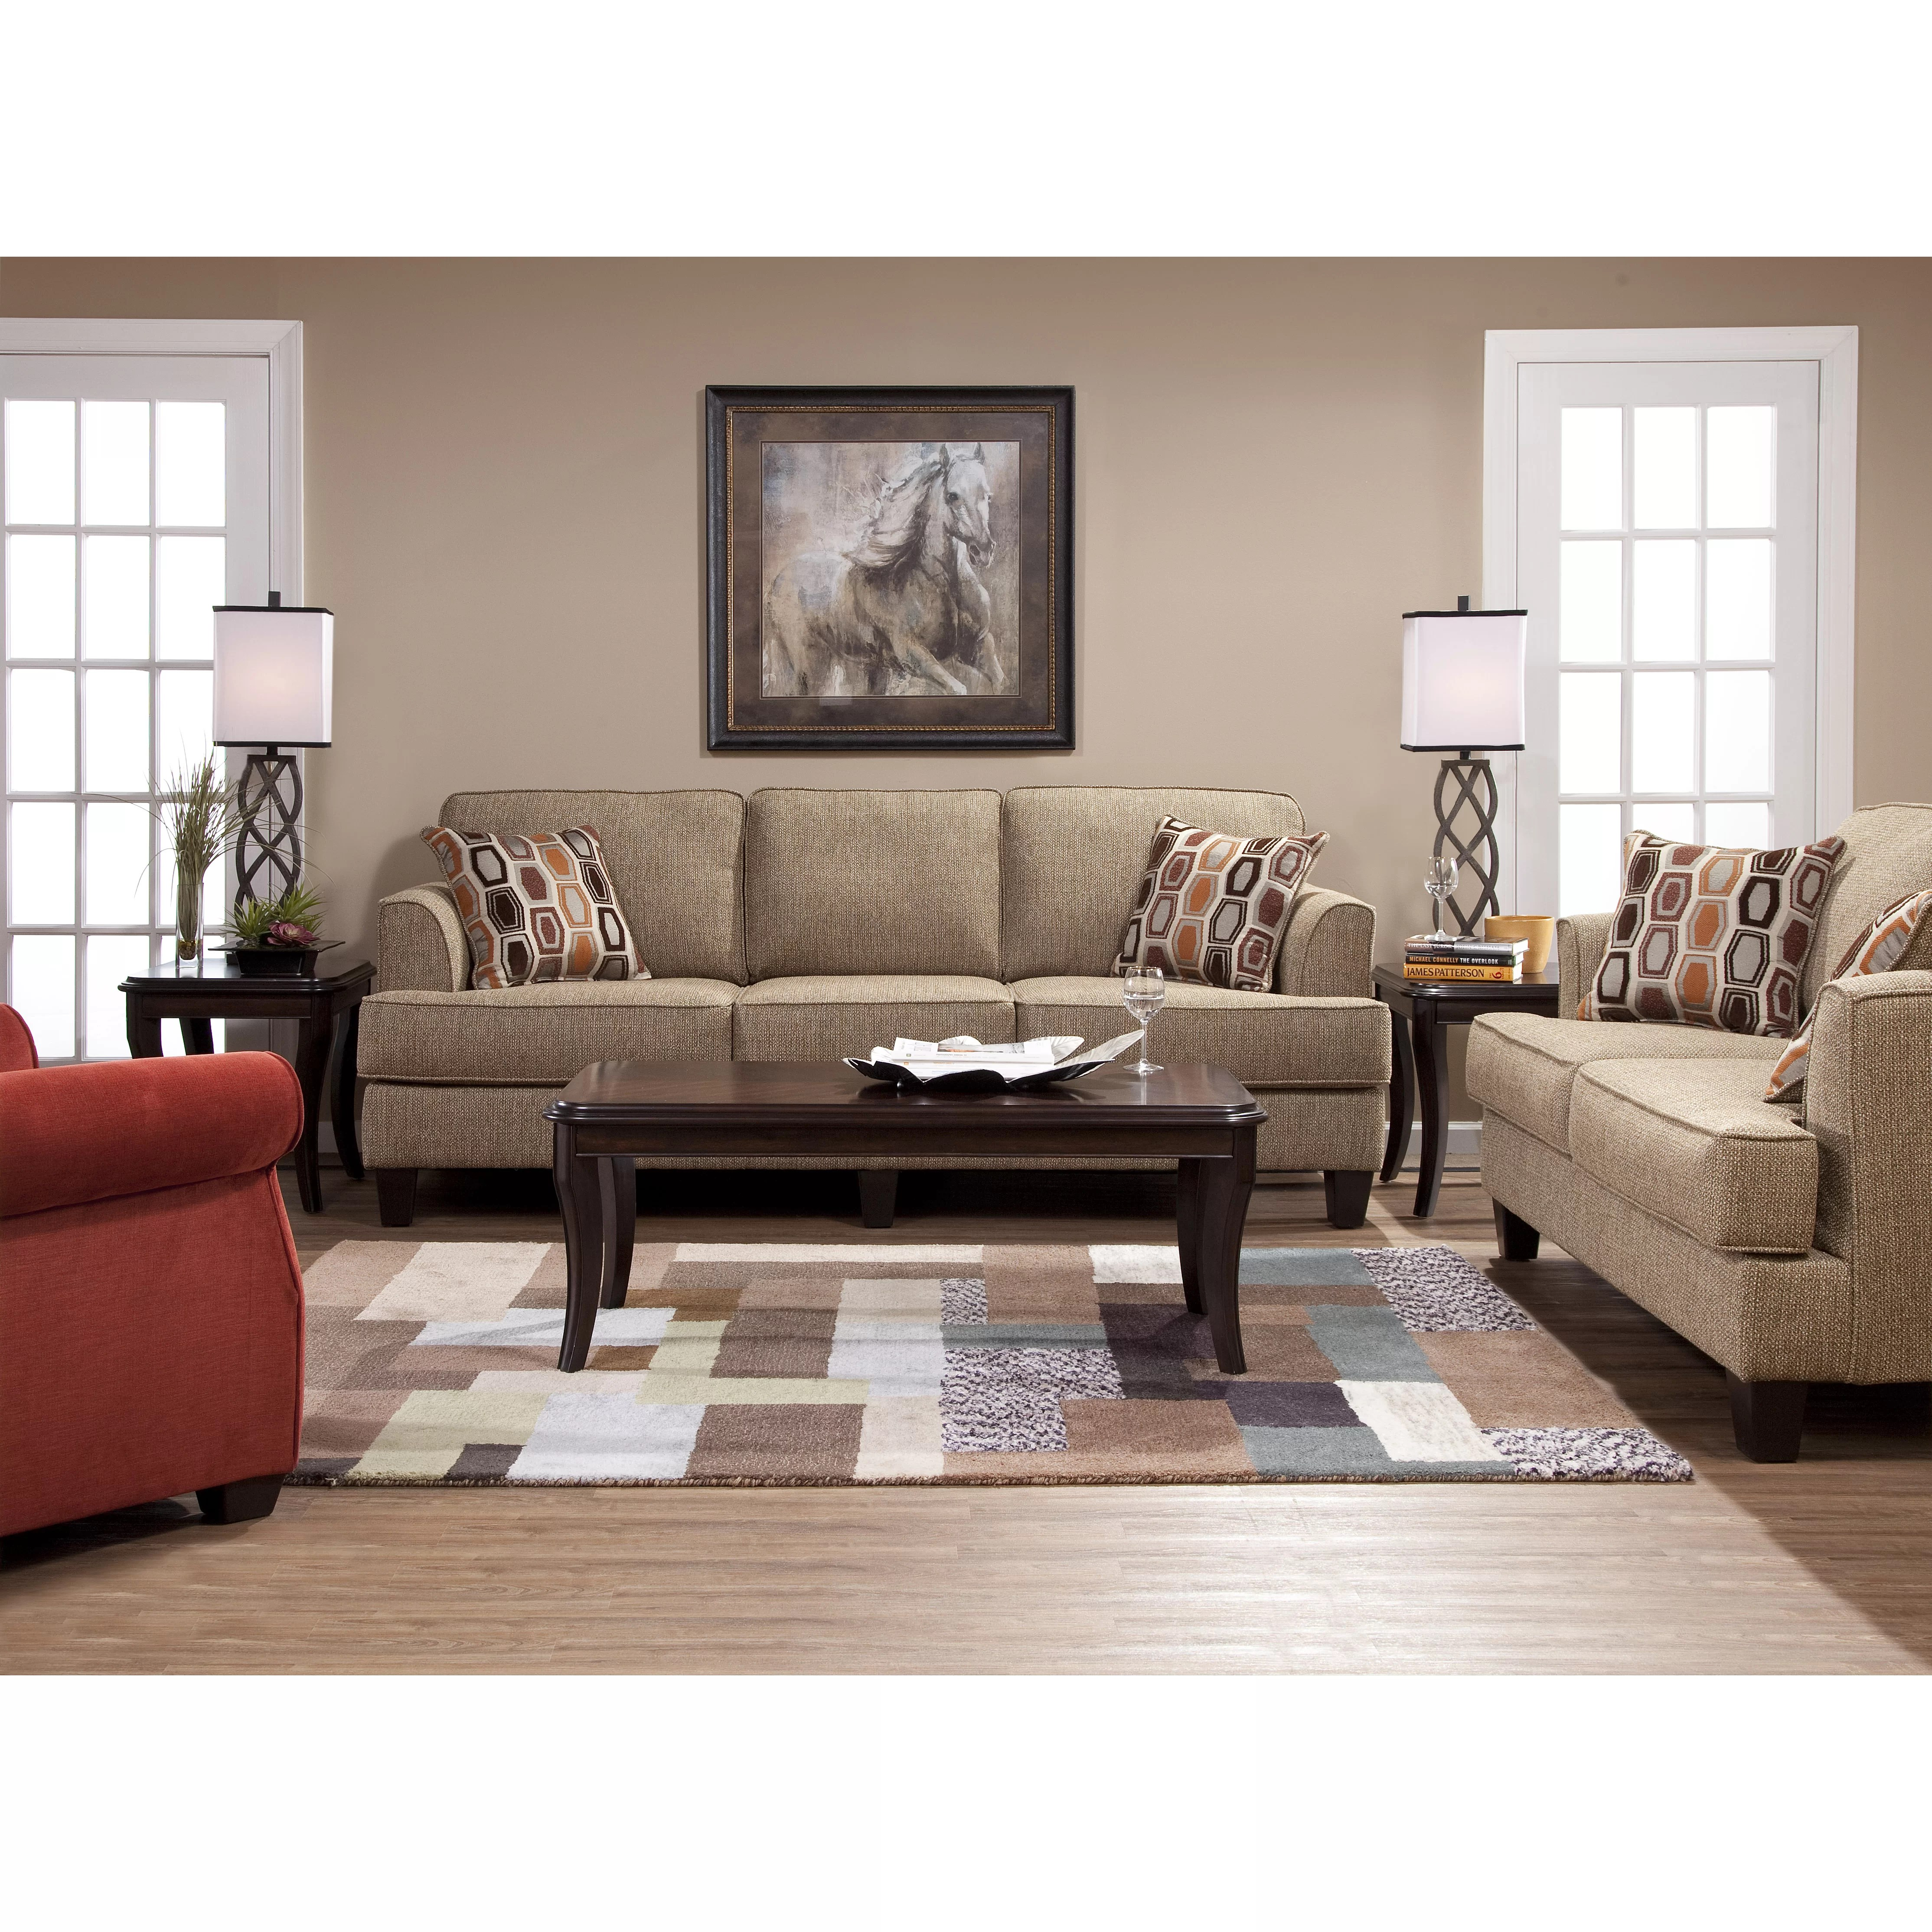 room sofa images baxton studio callidora brown leather sectional red barrel serta upholstery dallas living